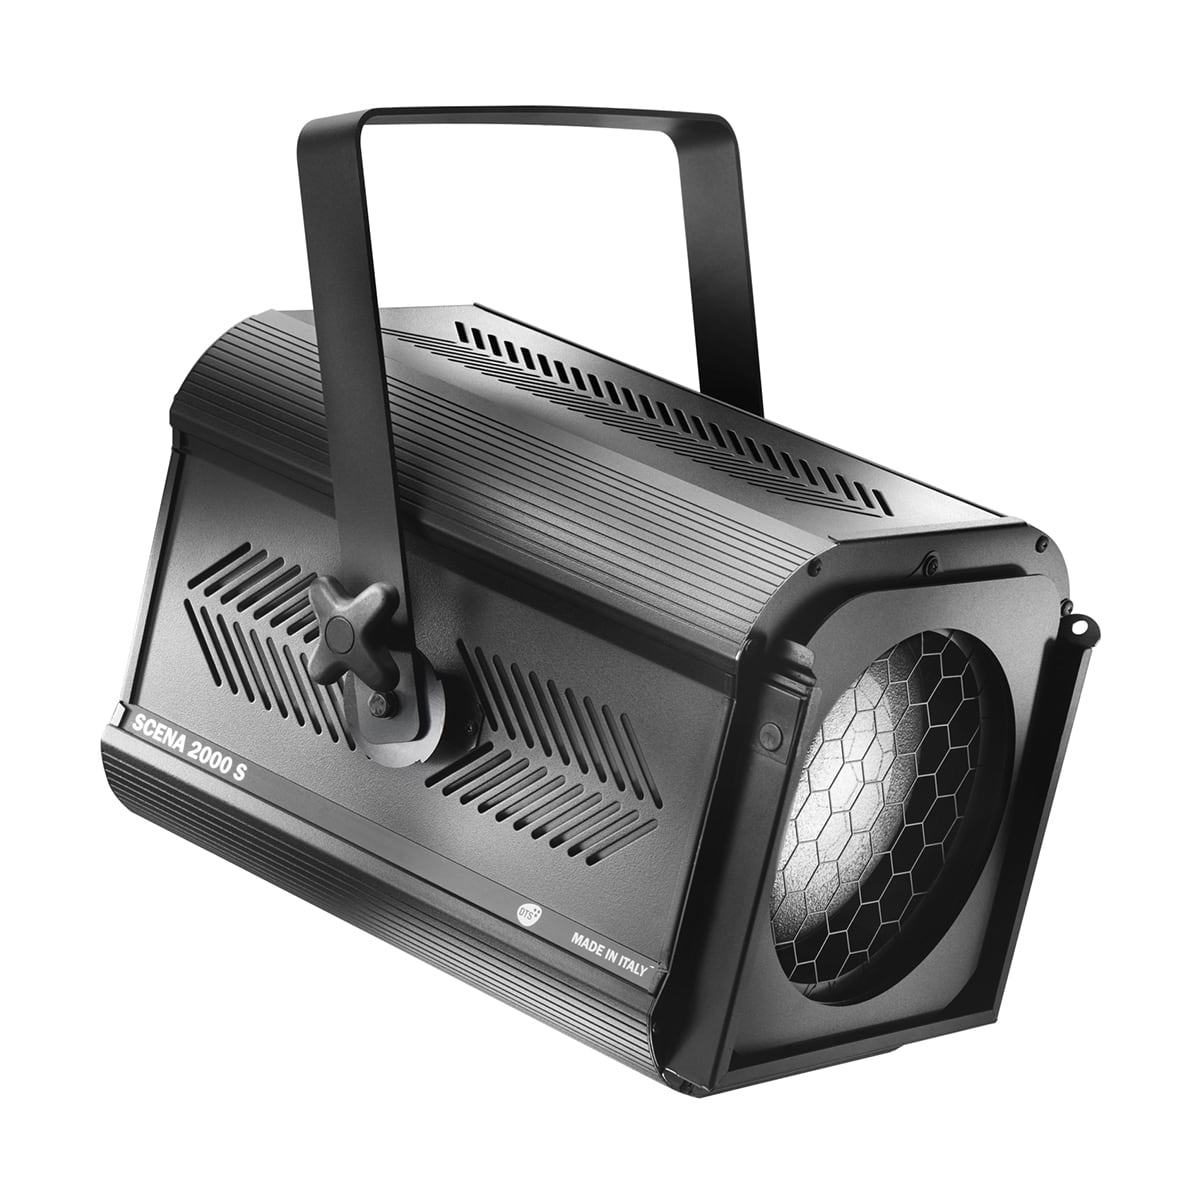 SCENA S - The classic lamp projector suitable for theatre